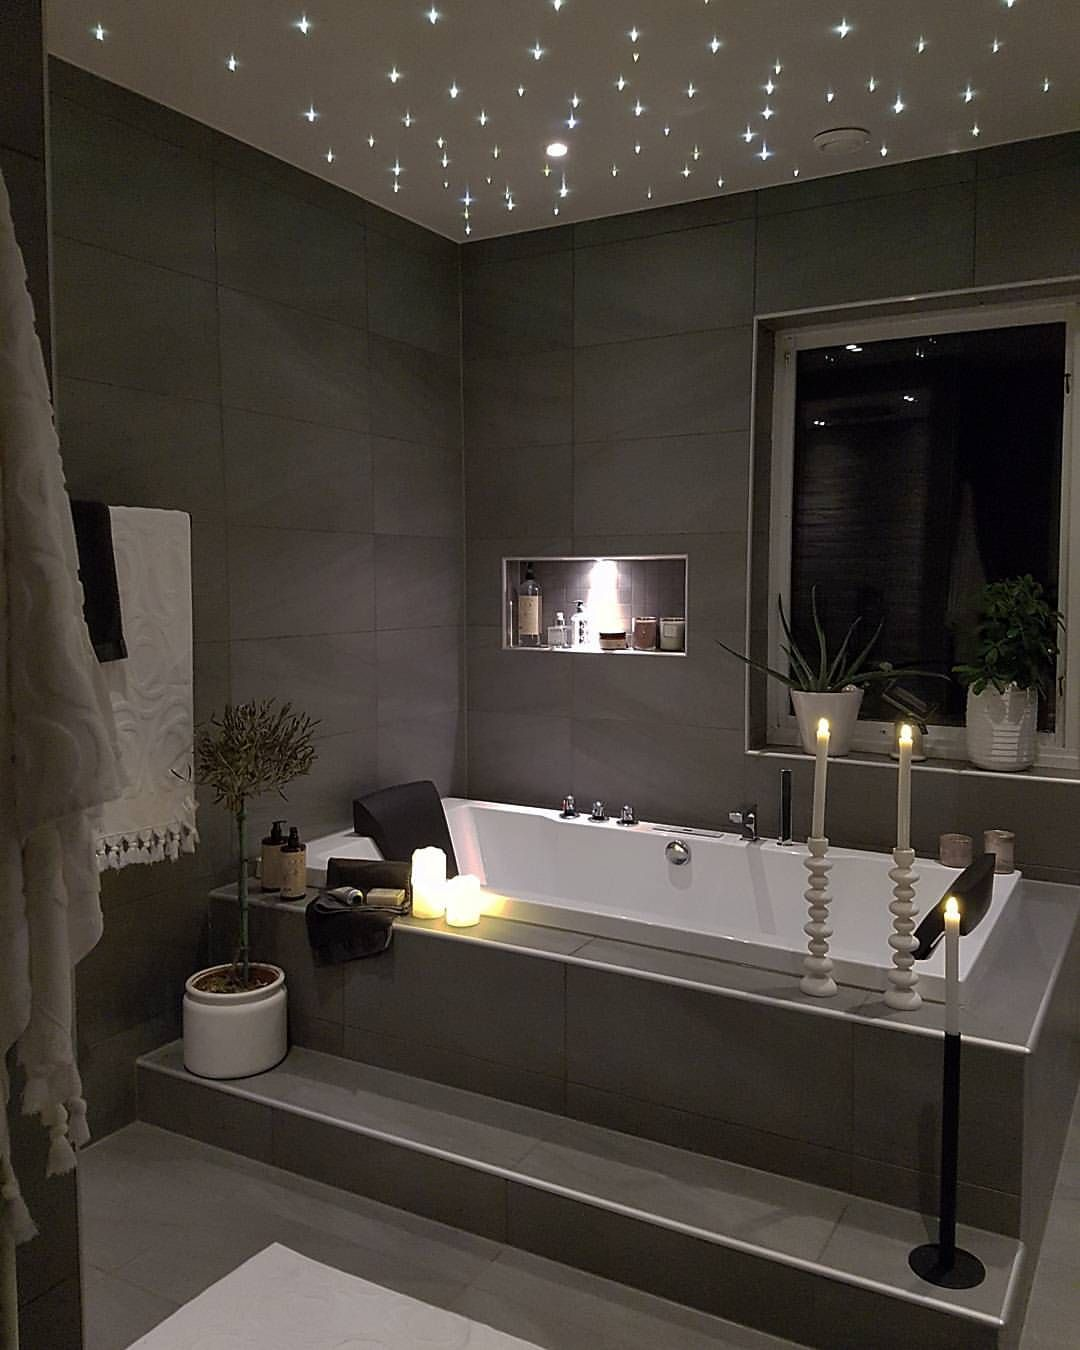 30 luxury shower designs demonstrating latest trends in modern this